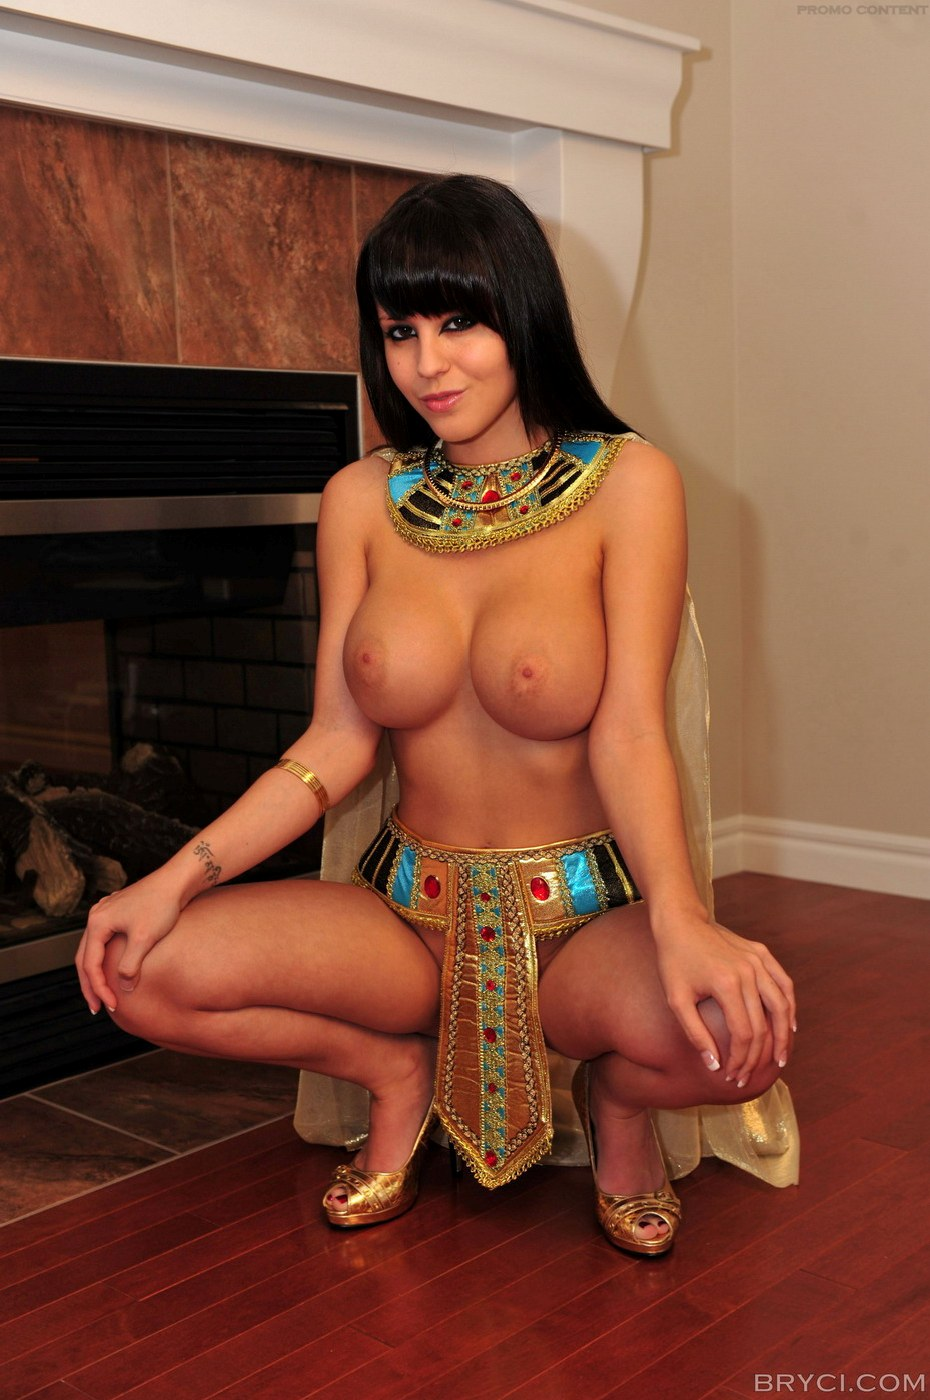 Have hit Cleopatra naked in movies phrase